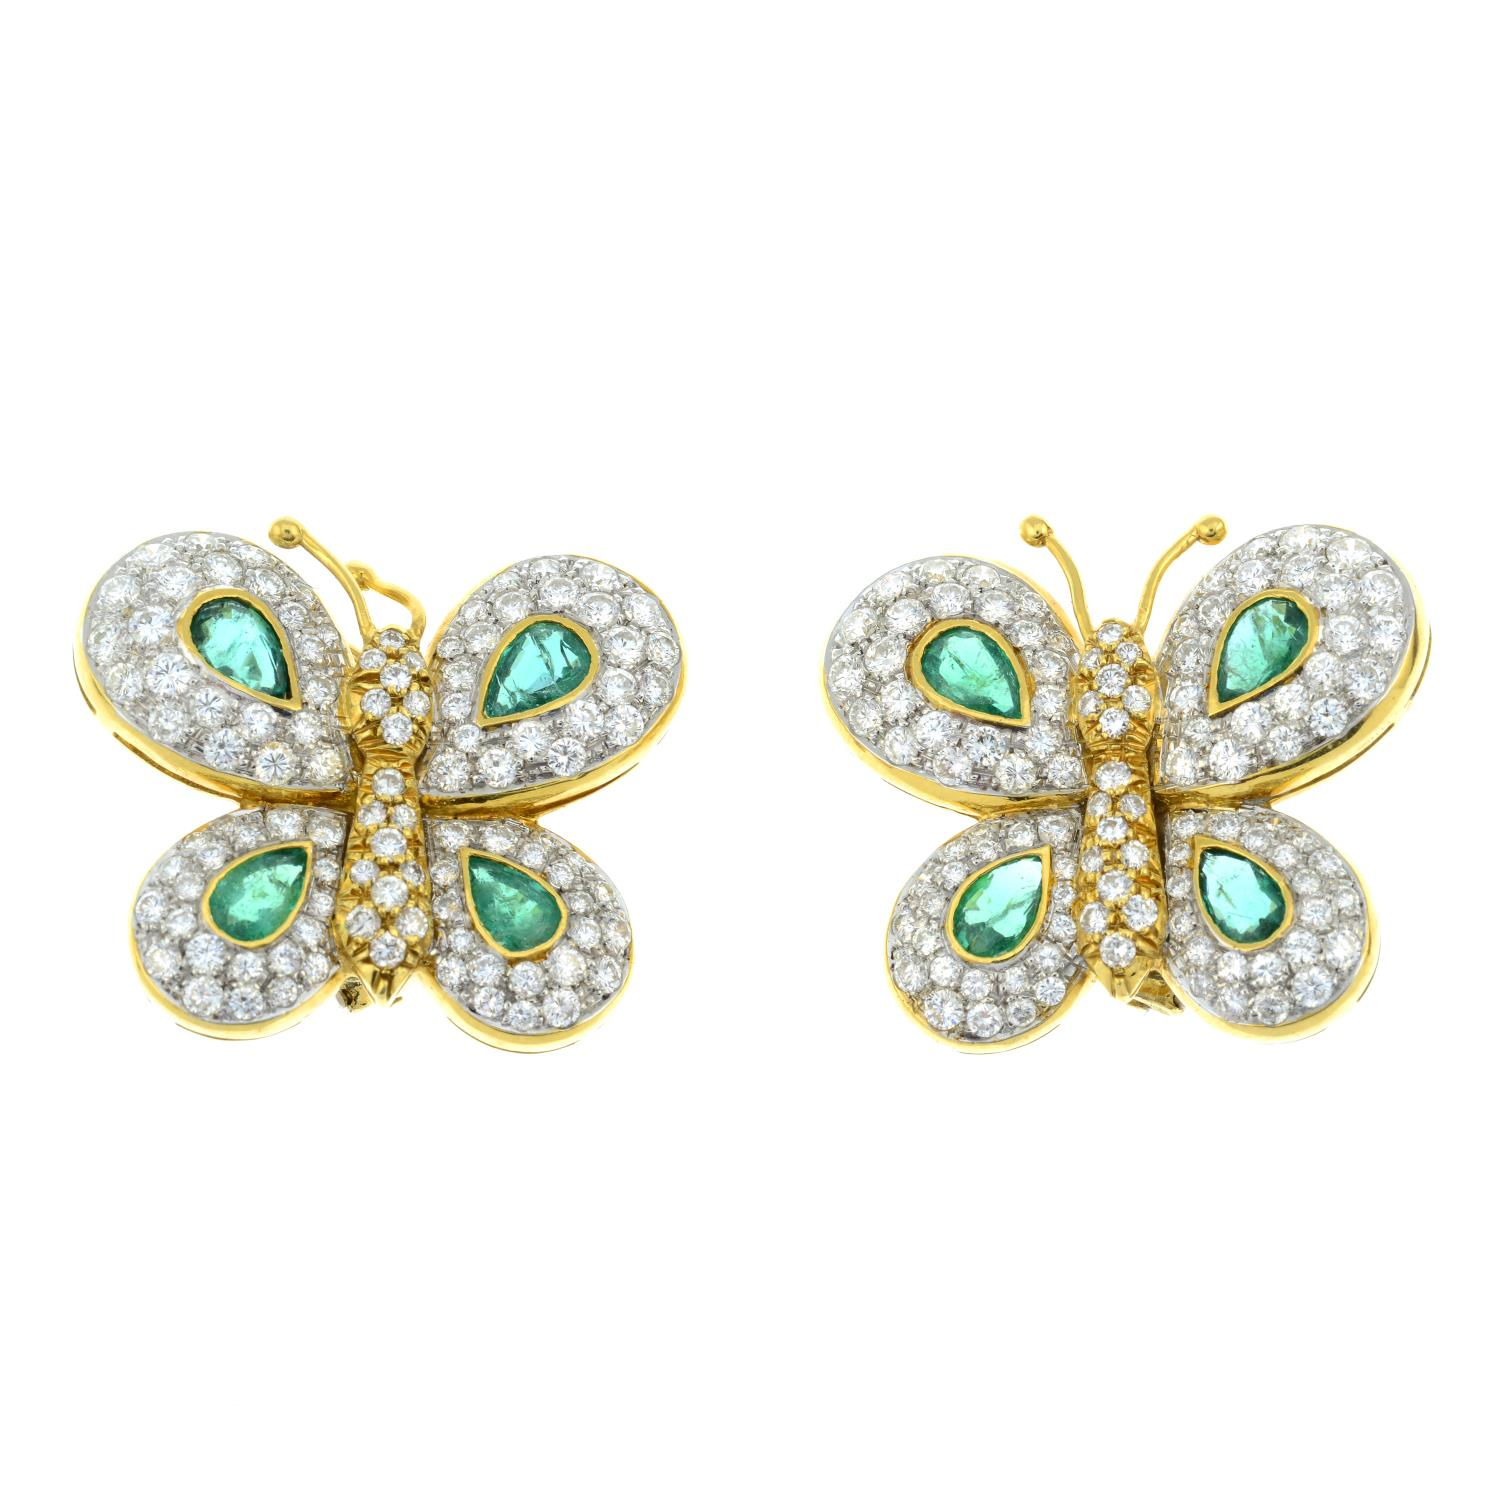 A pair of 1970s 18ct gold emerald and diamond butterfly earrings, - Image 2 of 3